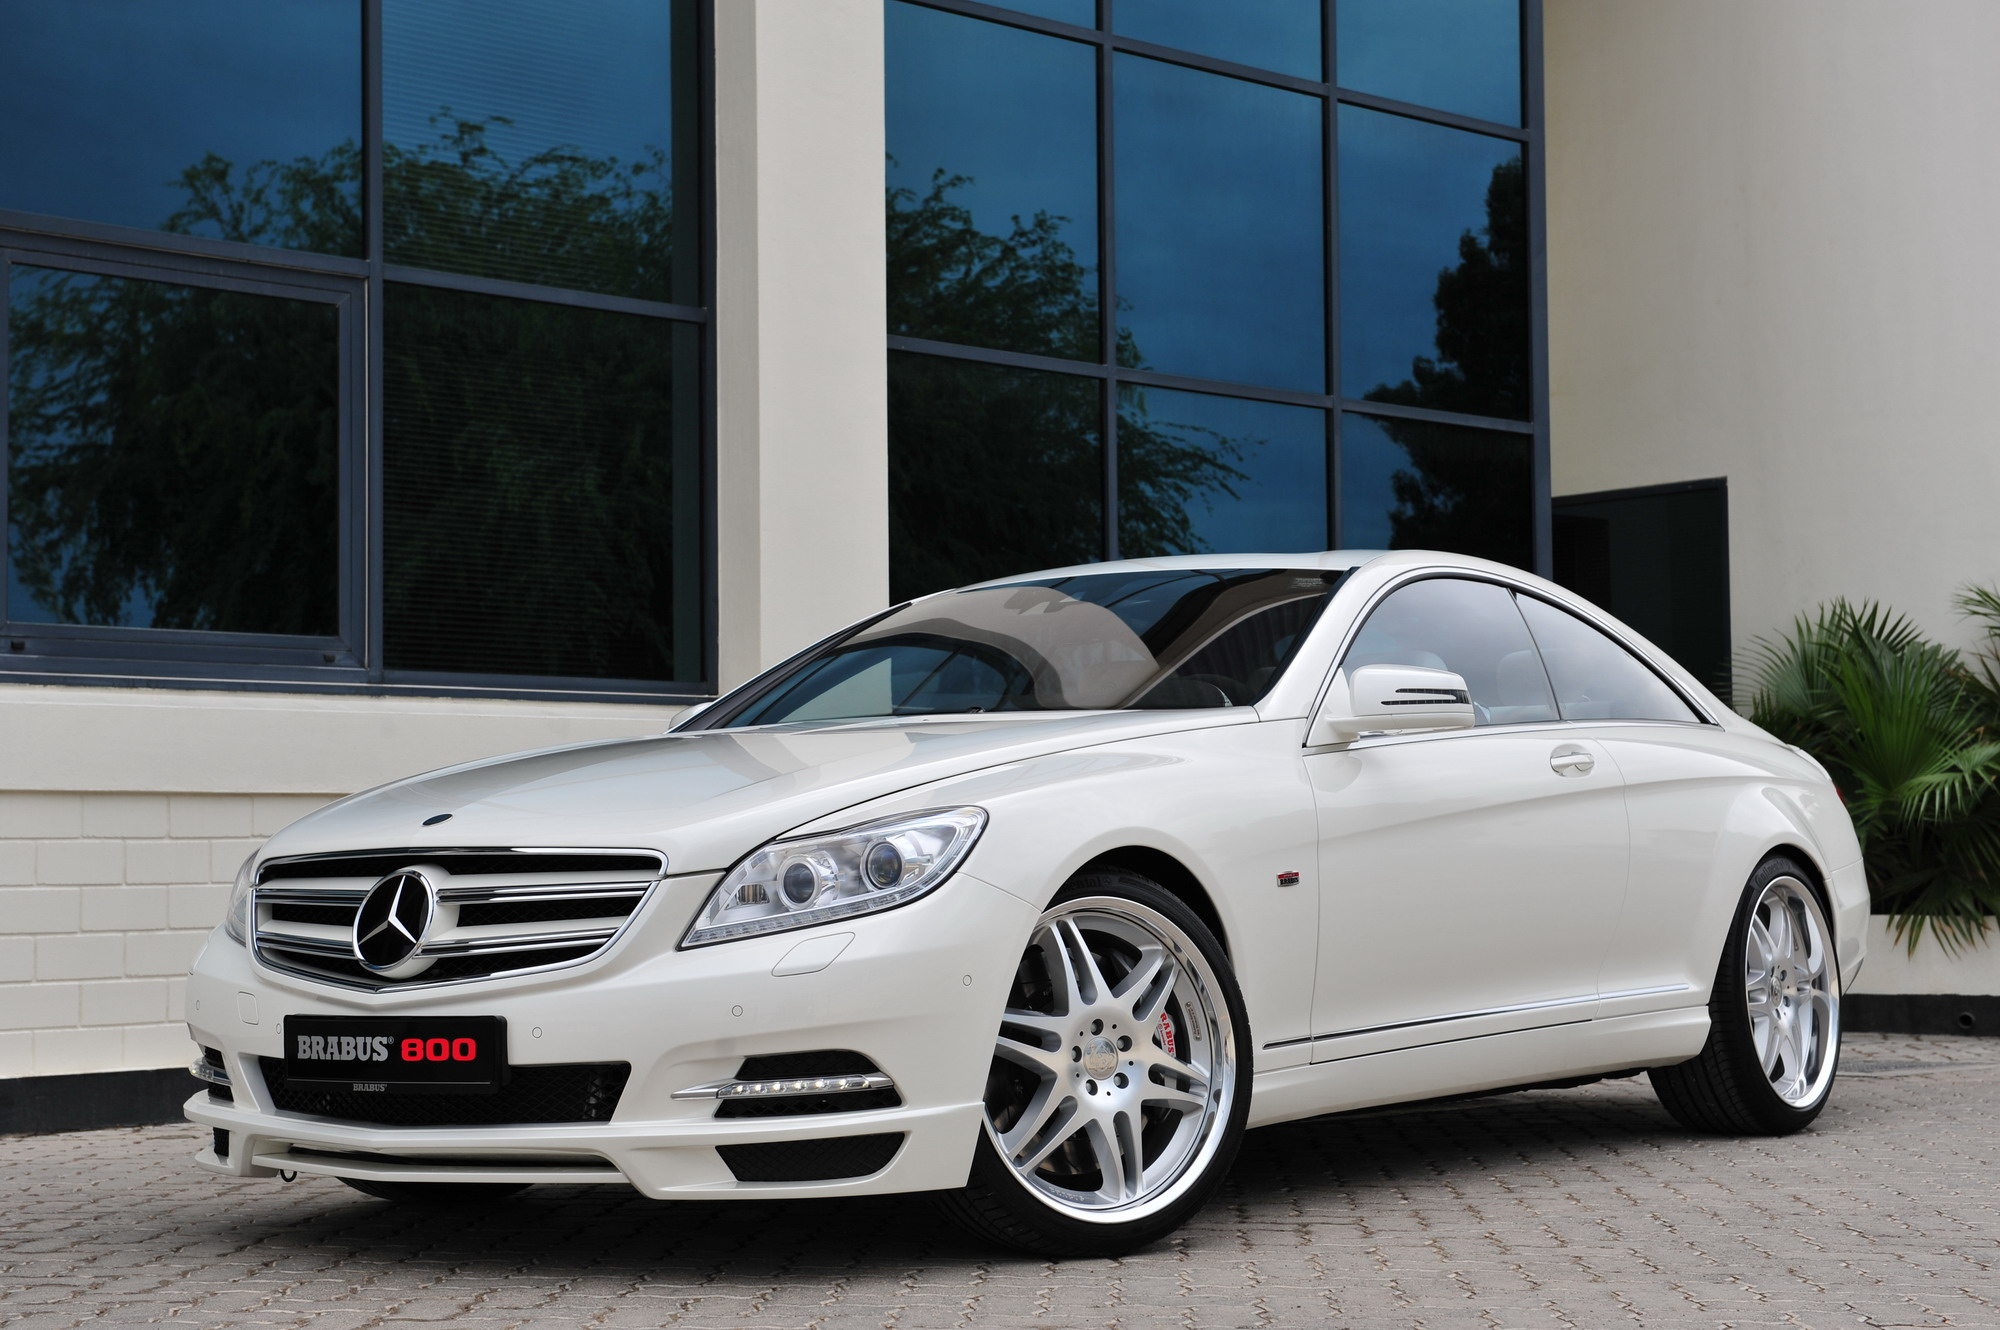 Top 10 Fastest Cars >> 2012 Mercedes CL 800 Coupe By Brabus   Top Speed